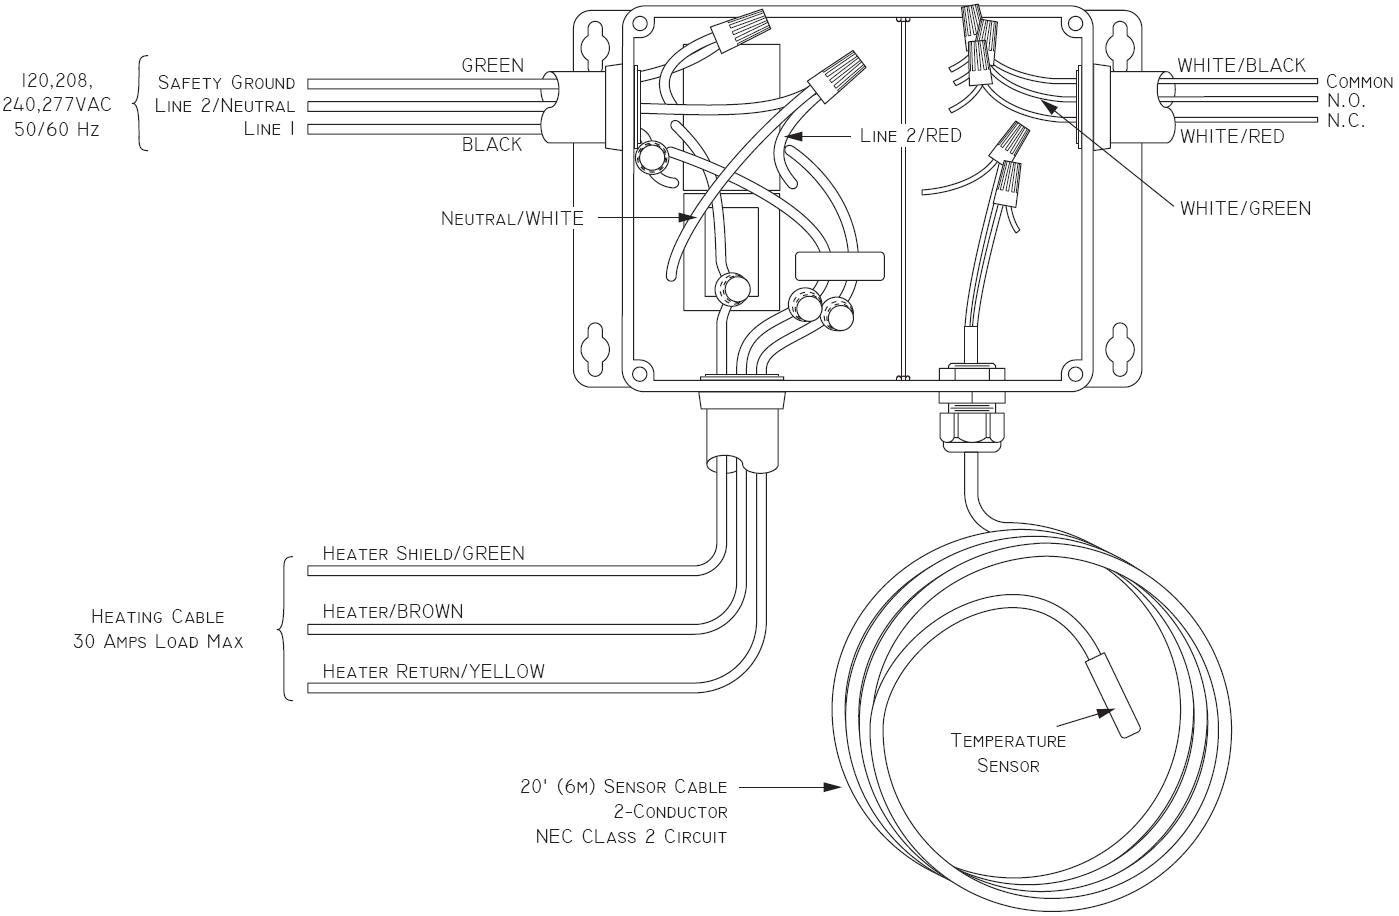 Electric Wall Heater Wiring Diagram: Wiring rh:mainetreasurechest.com,Design